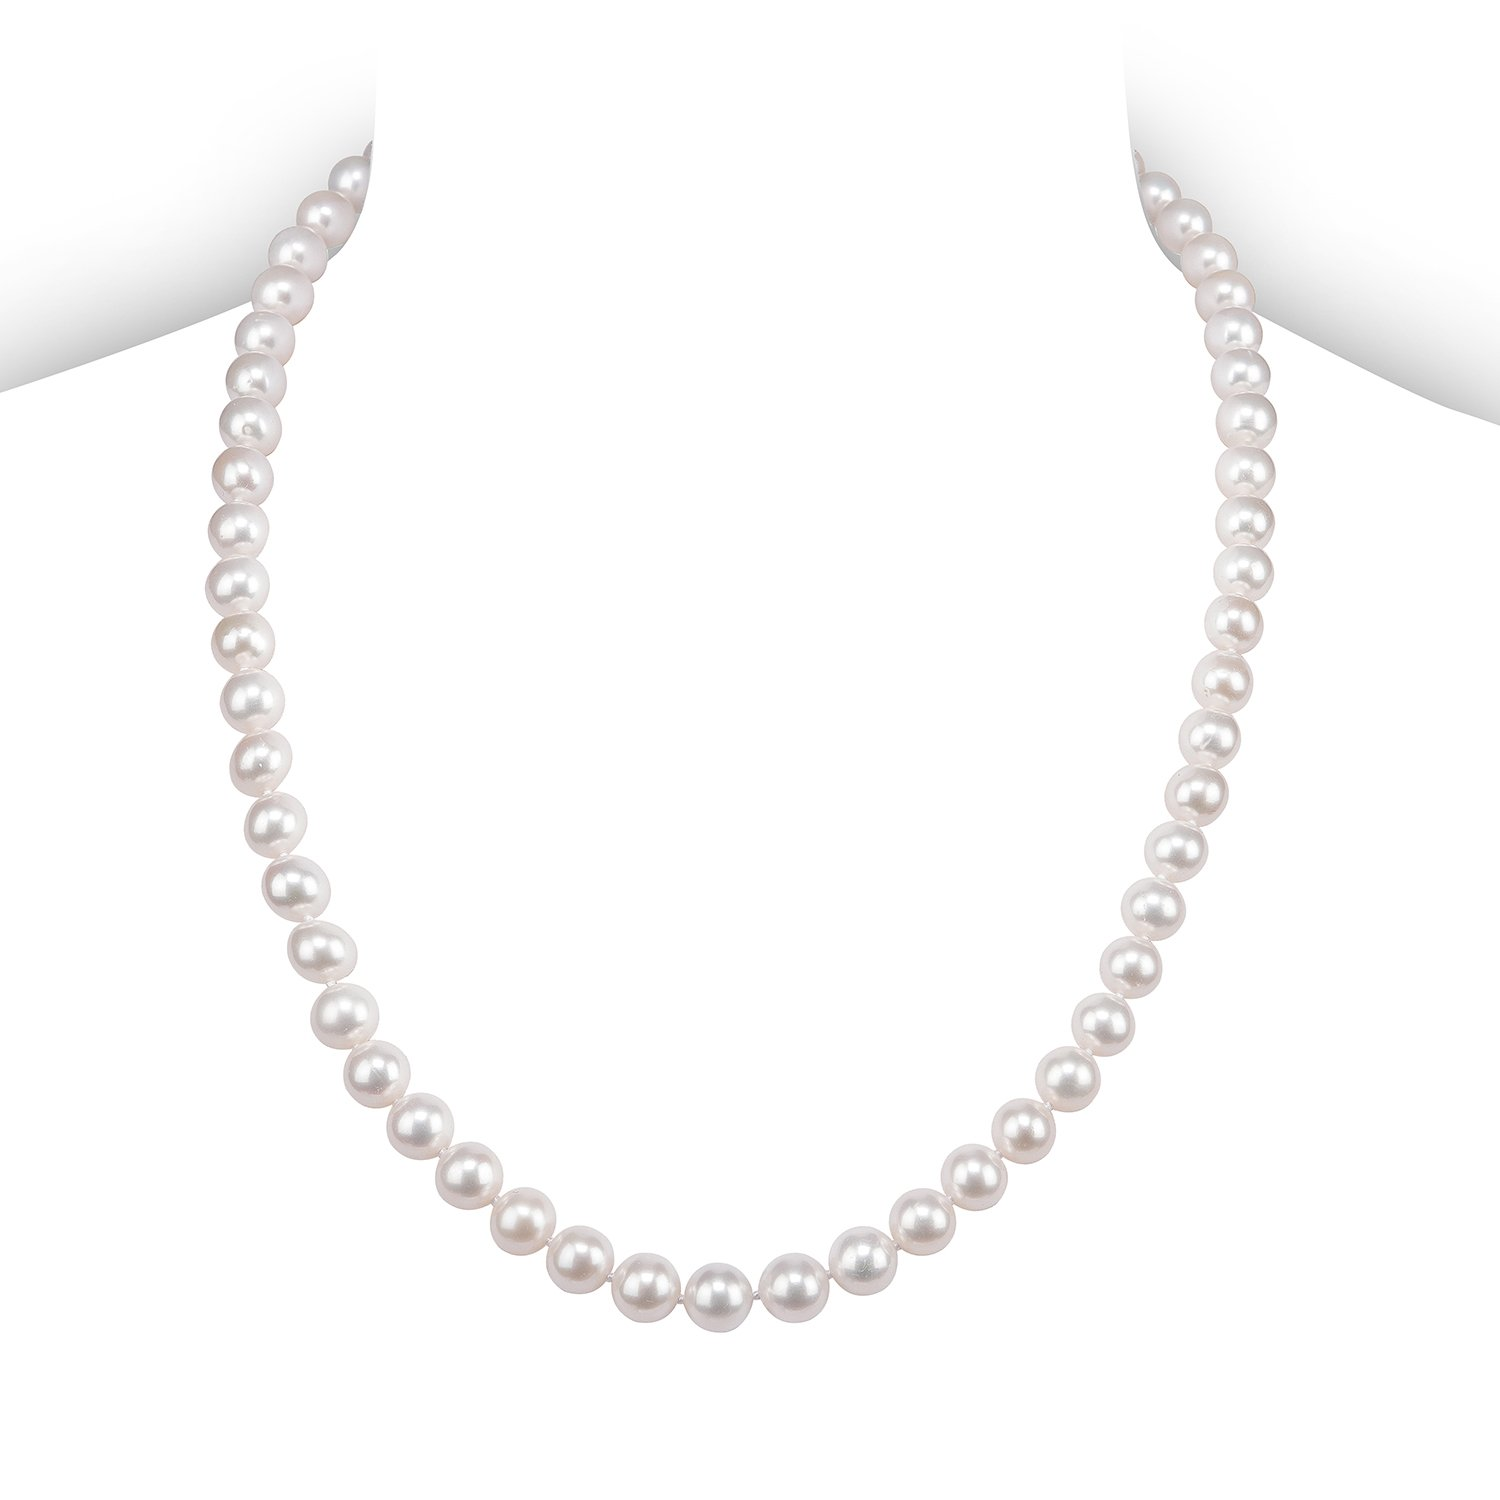 PAVOI Sterling Silver White Freshwater Cultured Pearl Necklace (20, 9mm)